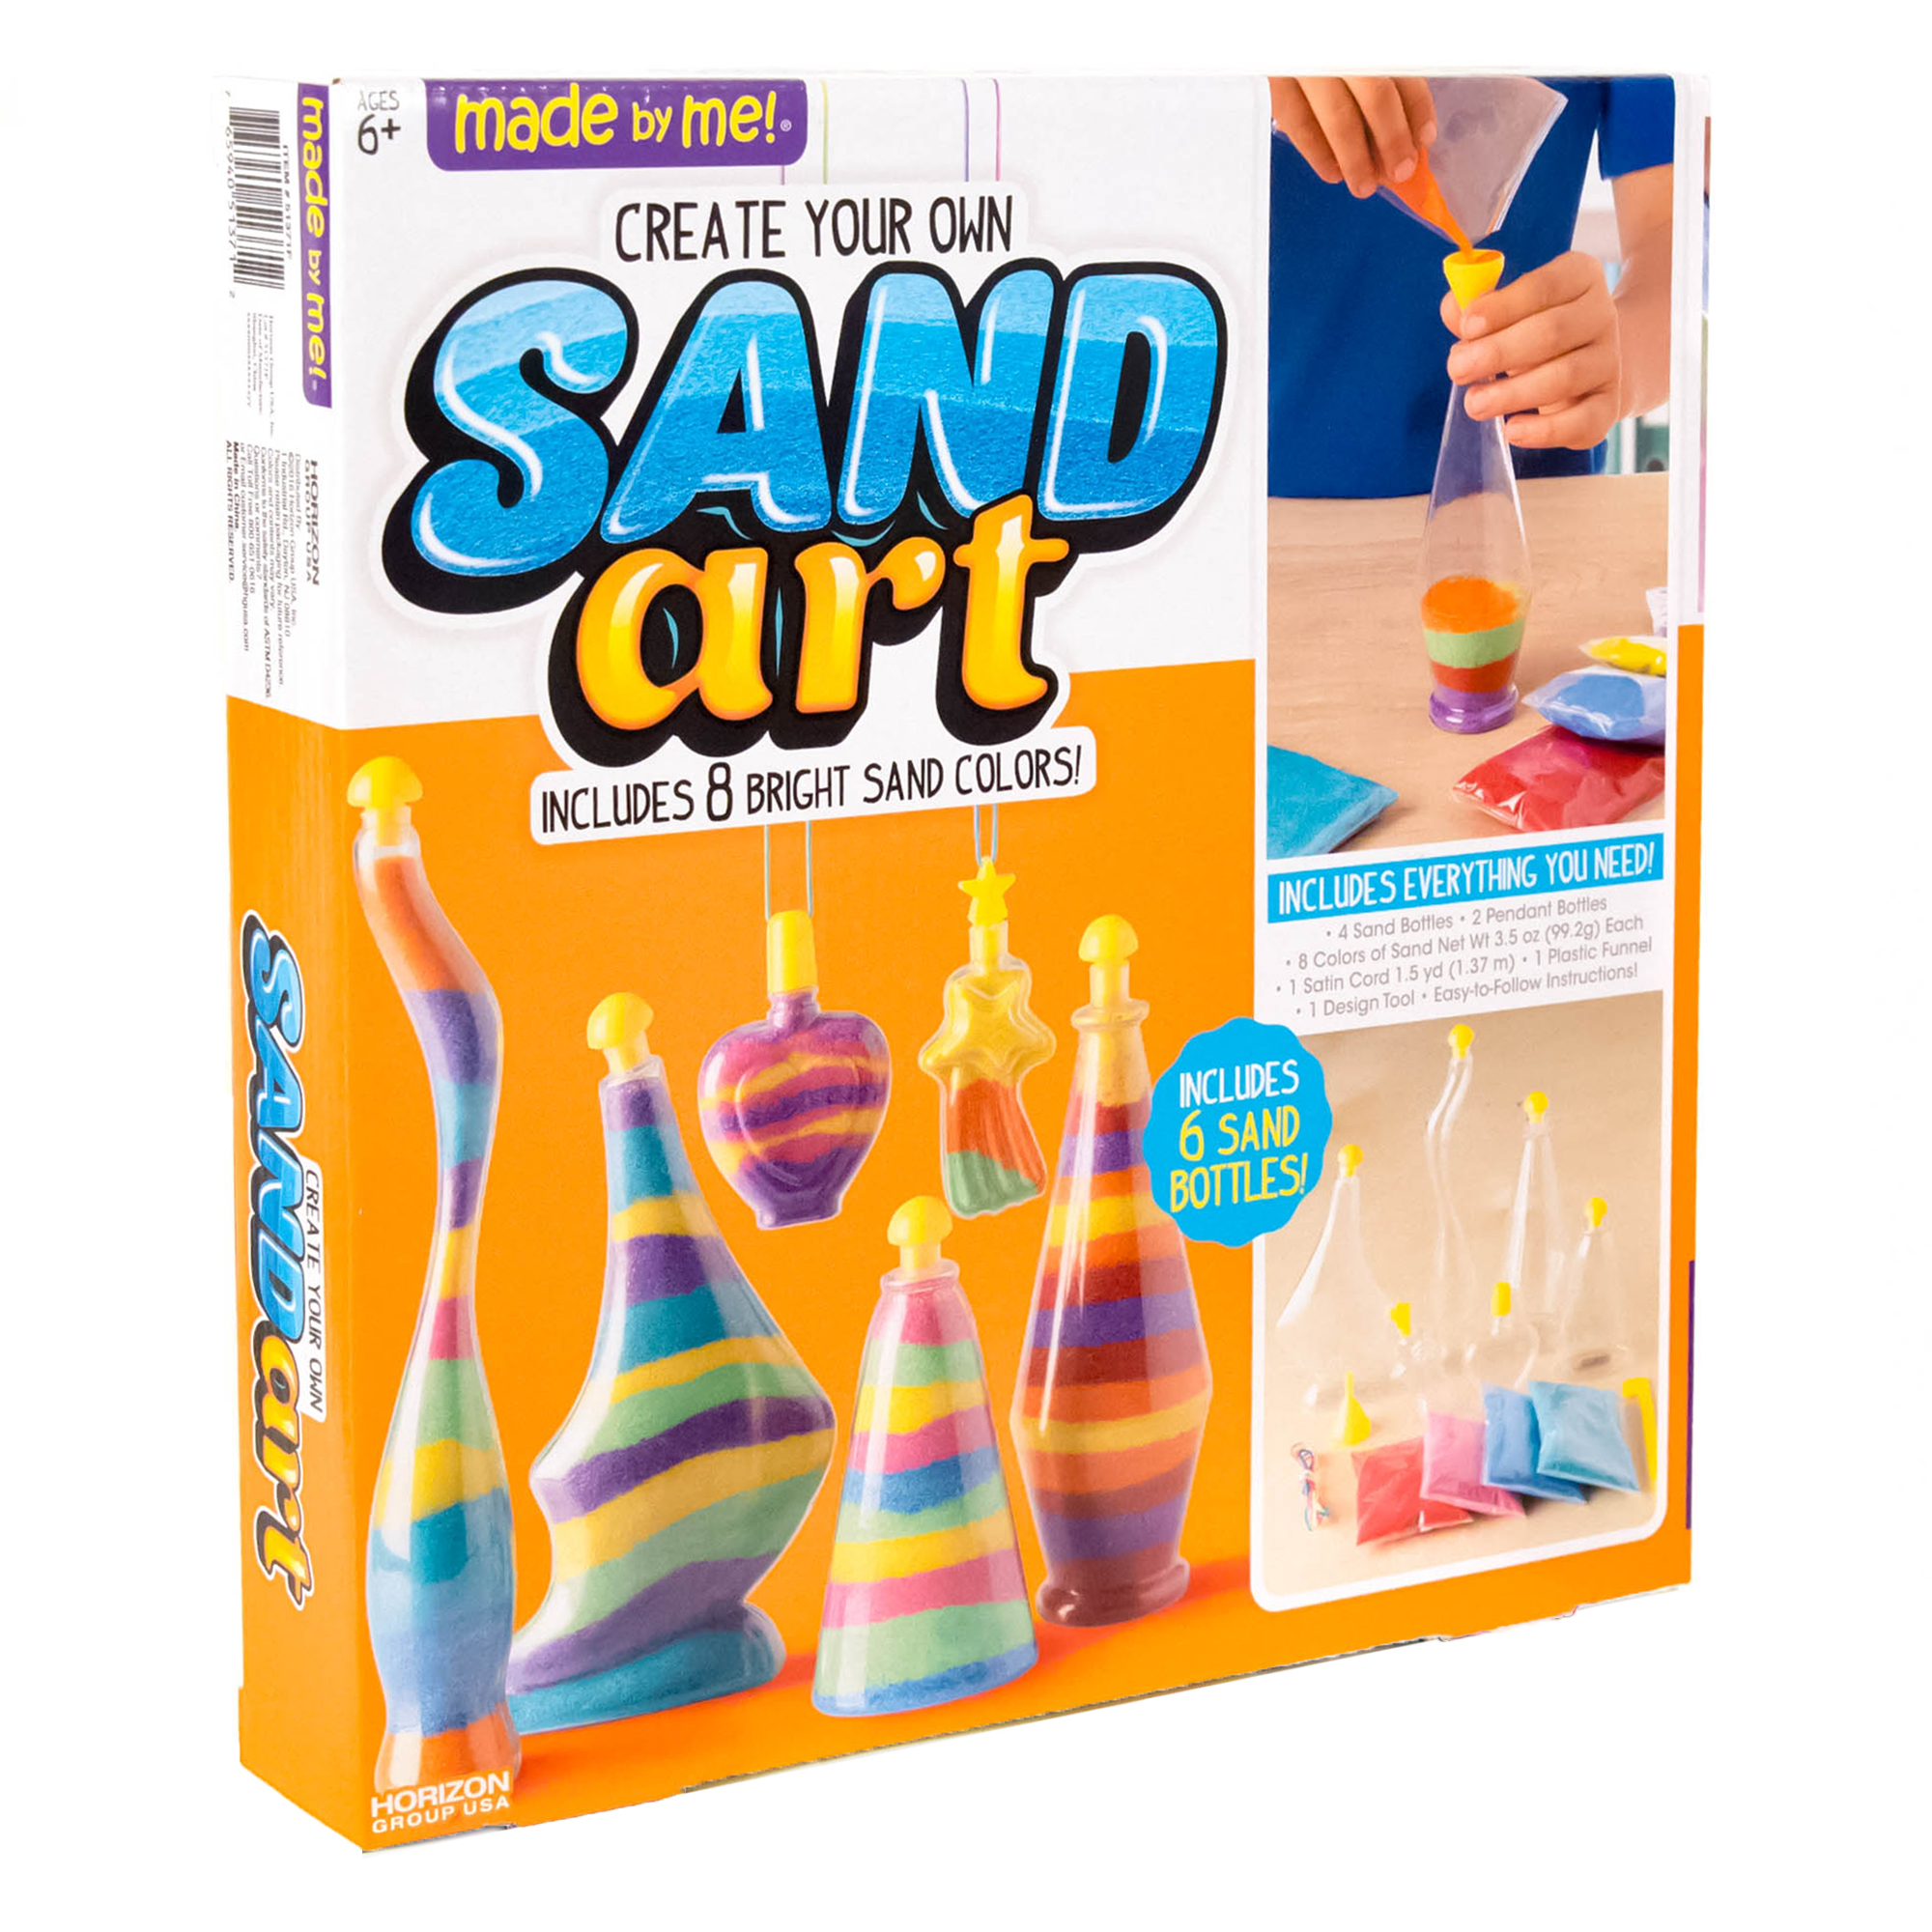 1 X BOTTLE CREATE YOUR OWN SAND ART SET KIDS ARTS CRAFTS TOY GAME FUN LEARNING